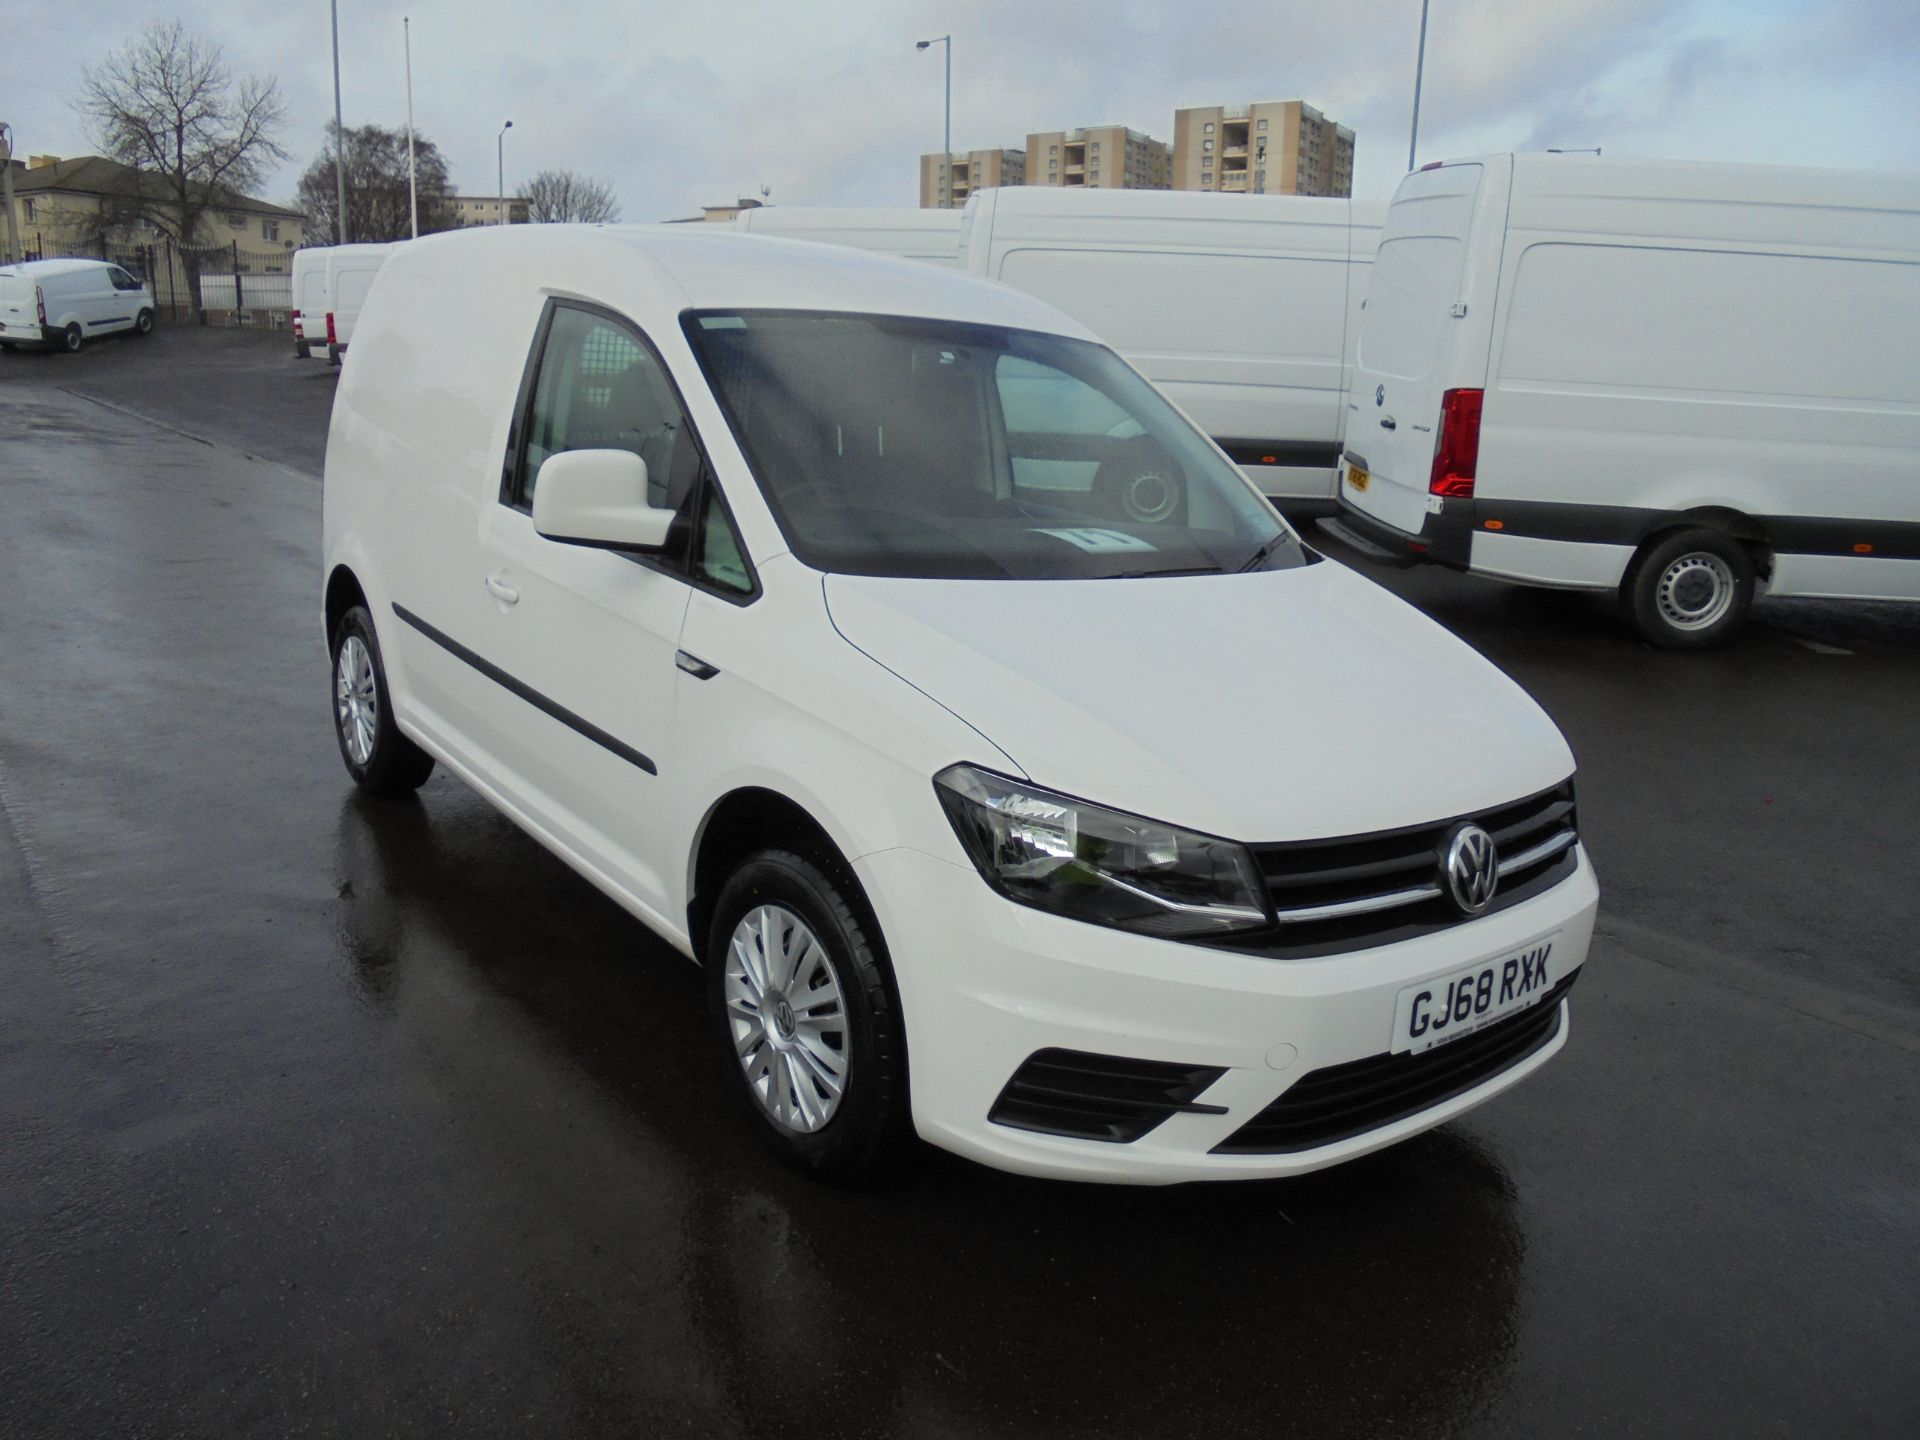 2018 Volkswagen Caddy 2.0 Tdi Bluemotion Tech 102Ps Trendline [Ac] Van (GJ68RXK)